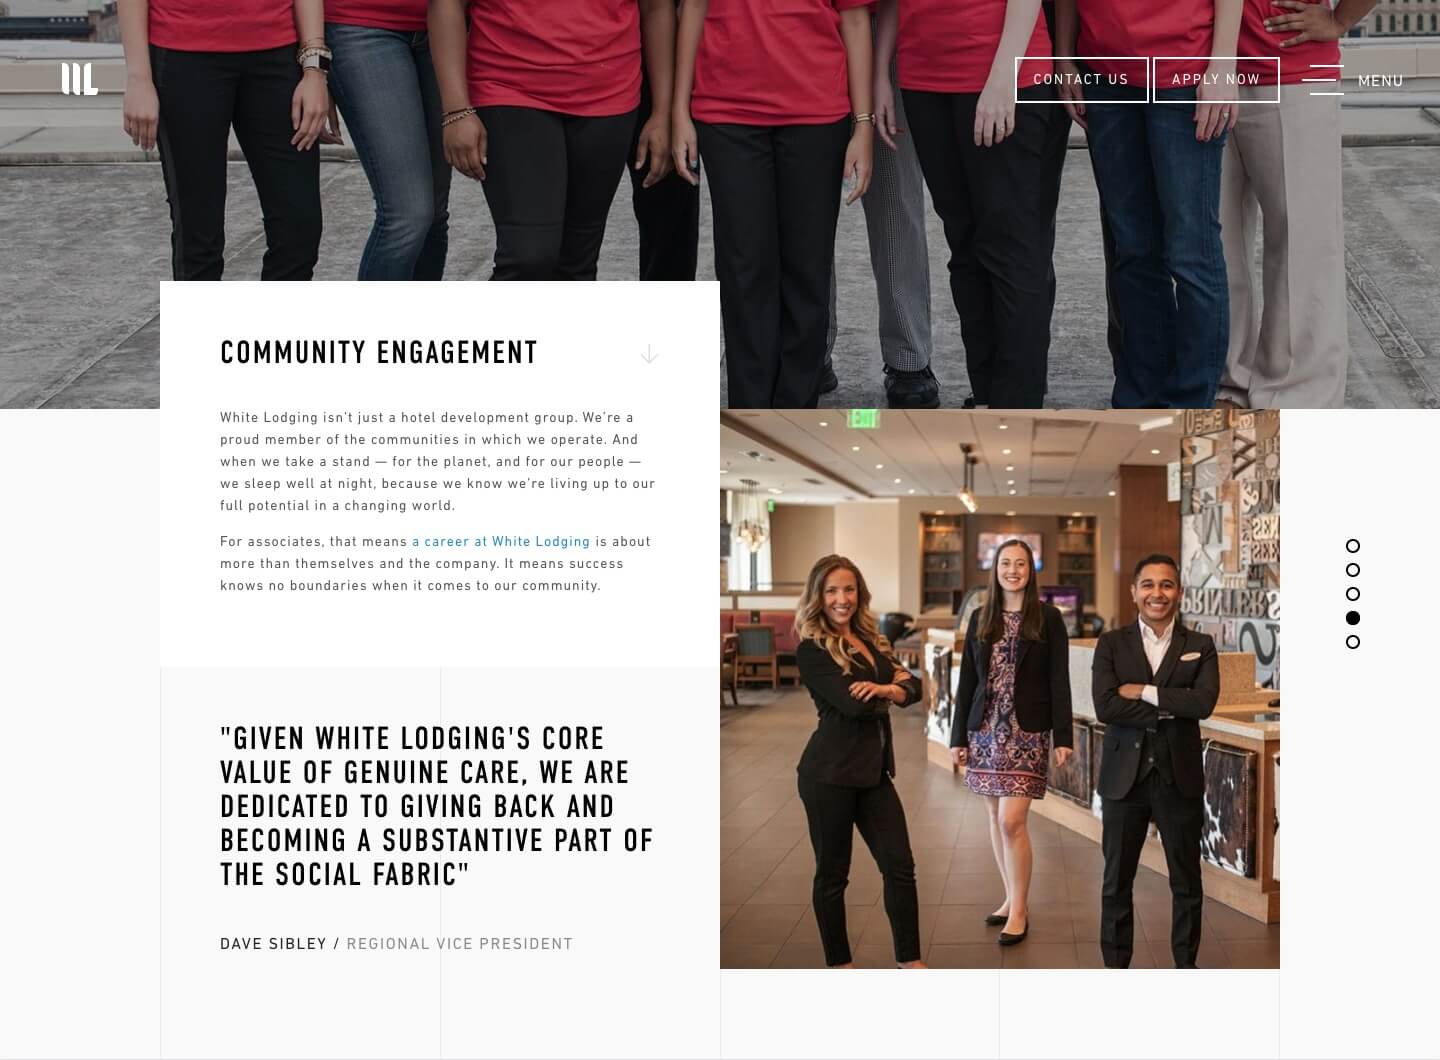 The White Lodging website's Community Engagement page